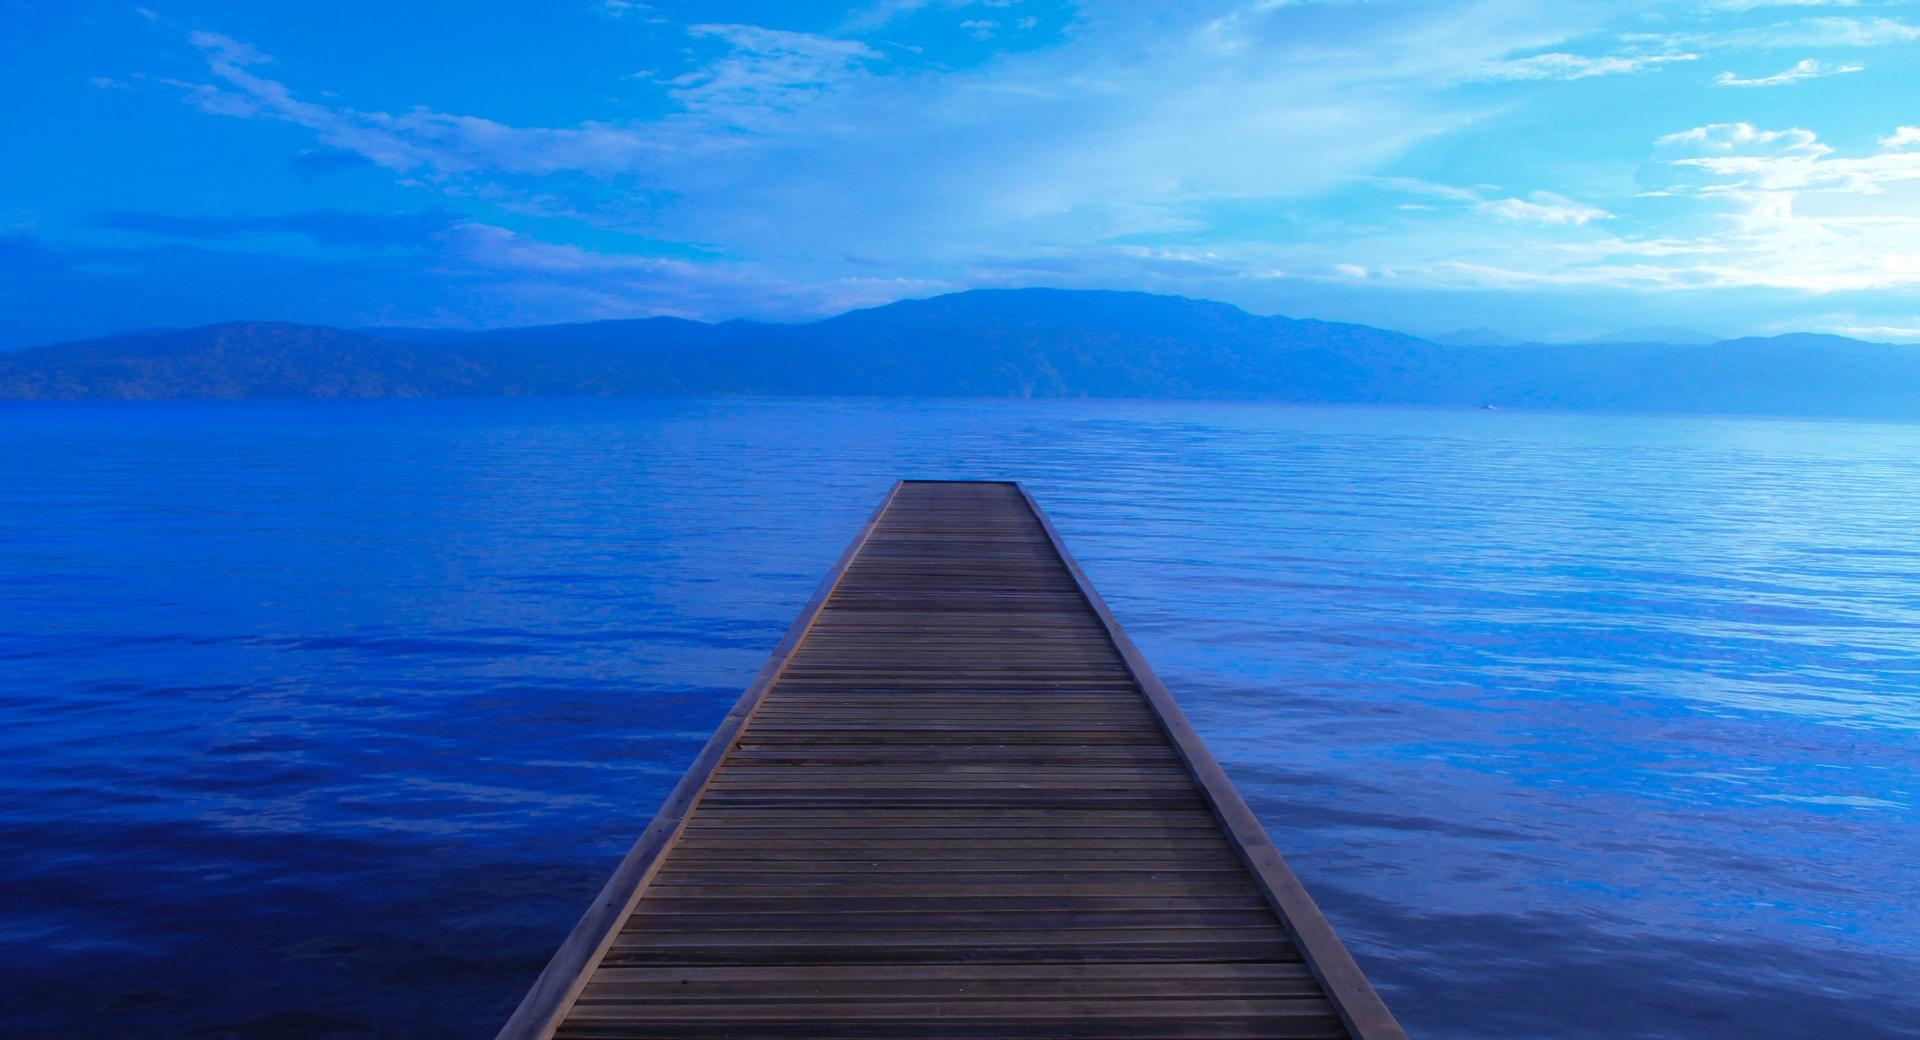 Wooden Bridge wallpapers HD quality